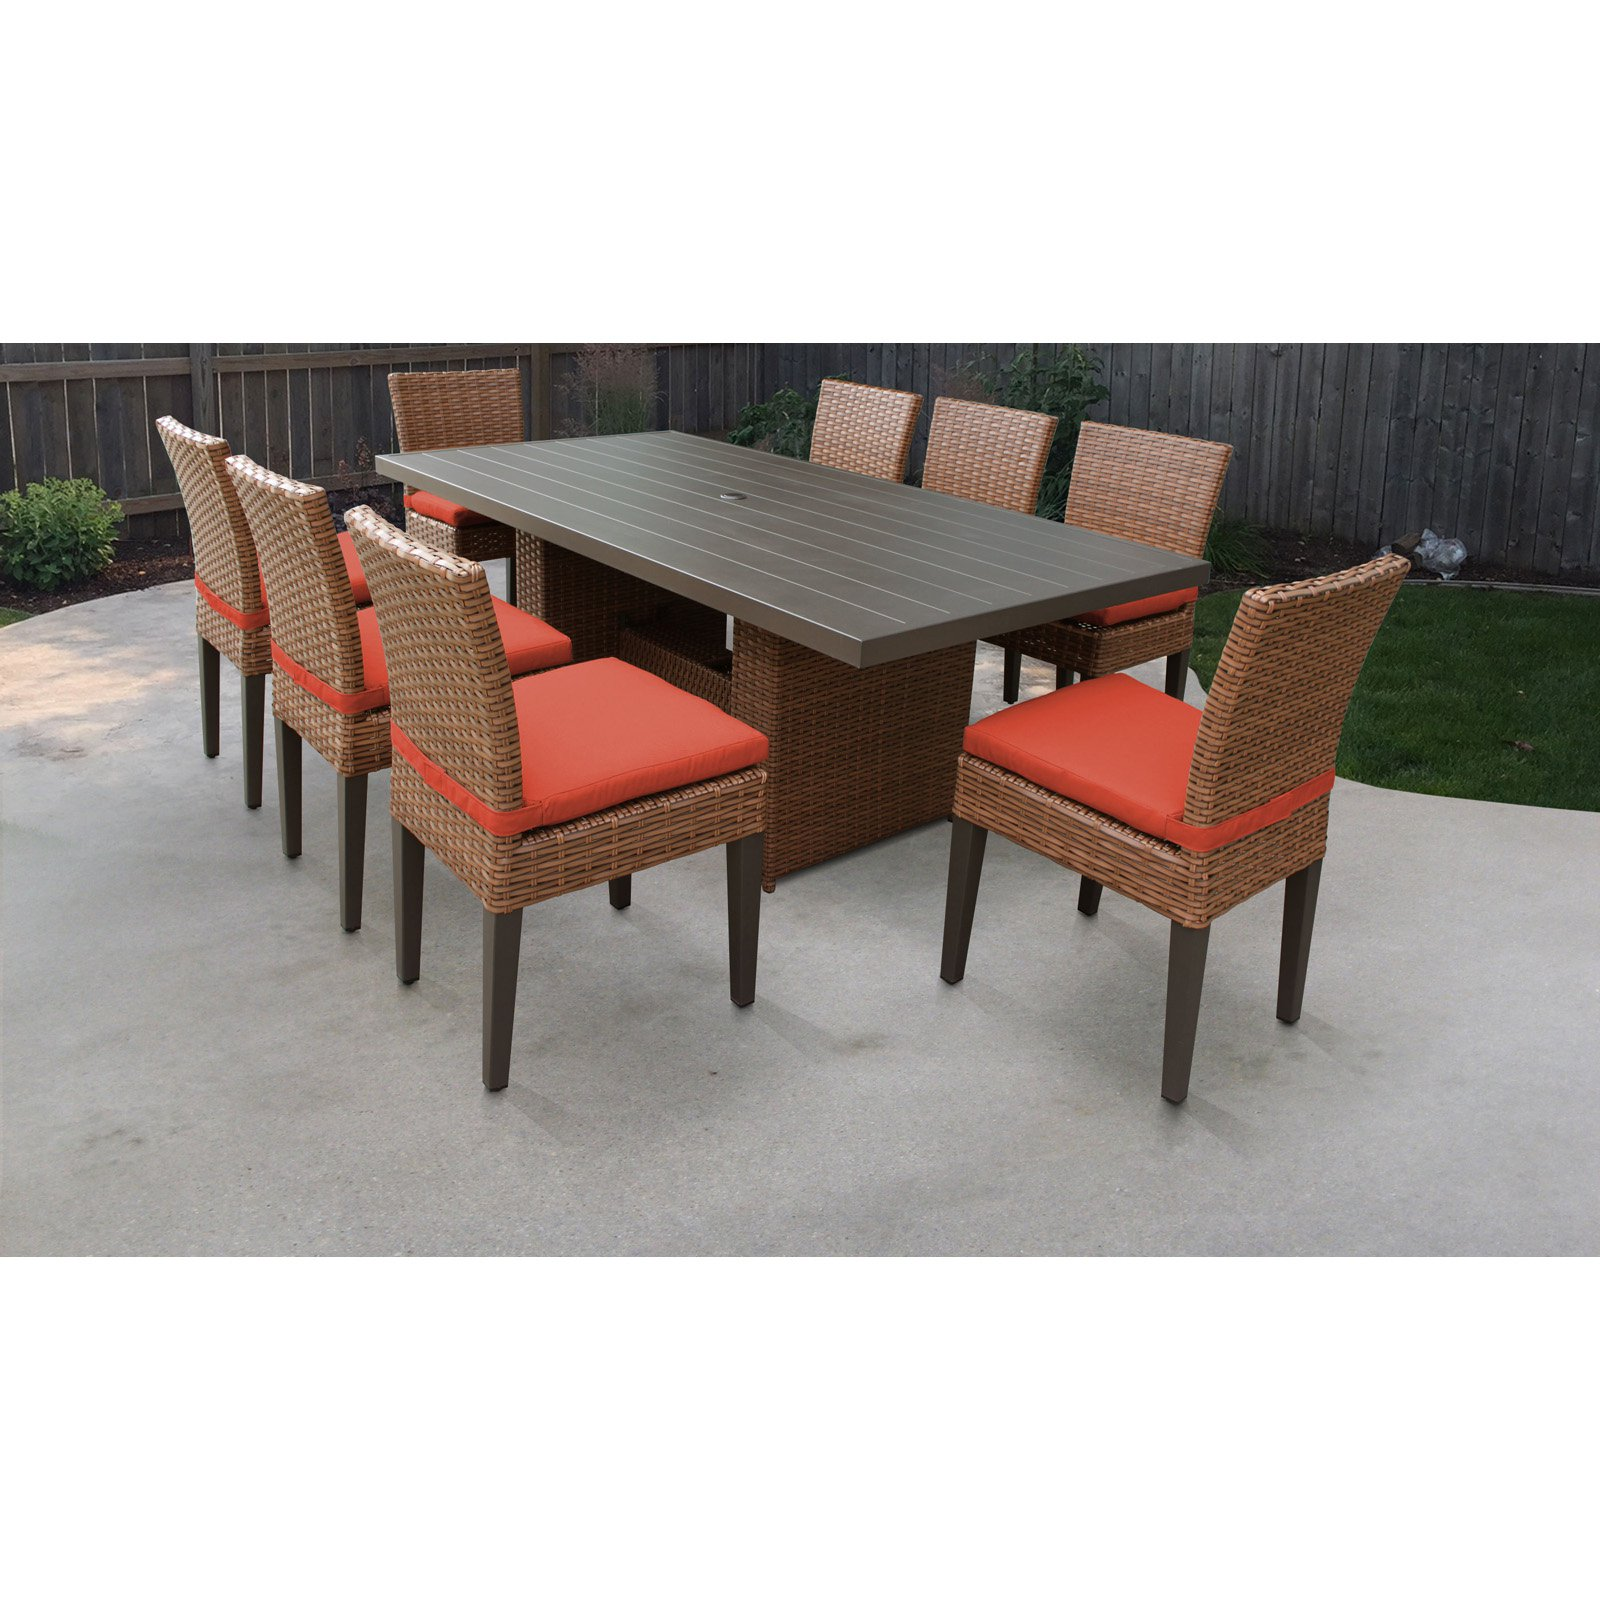 TK Classics Laguna Wicker 9 Piece Patio Dining Set with Armless Chairs